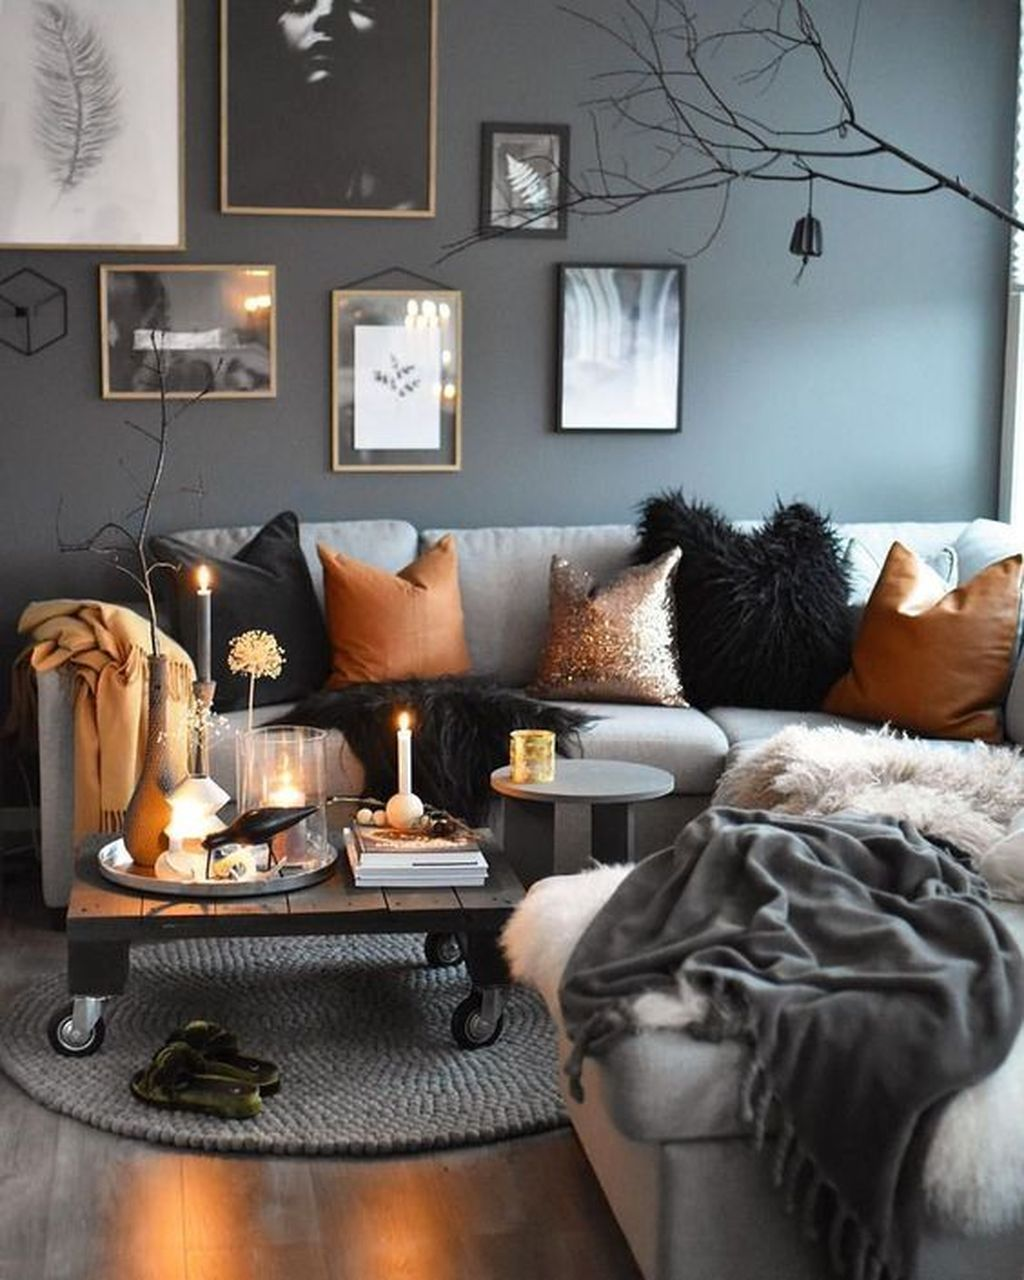 20 Comfy Winter Decoration Ideas for Warm Small Living Room Atmosphere#atmosphere #comfy #decoration #ideas #living #room #small #warm #winter